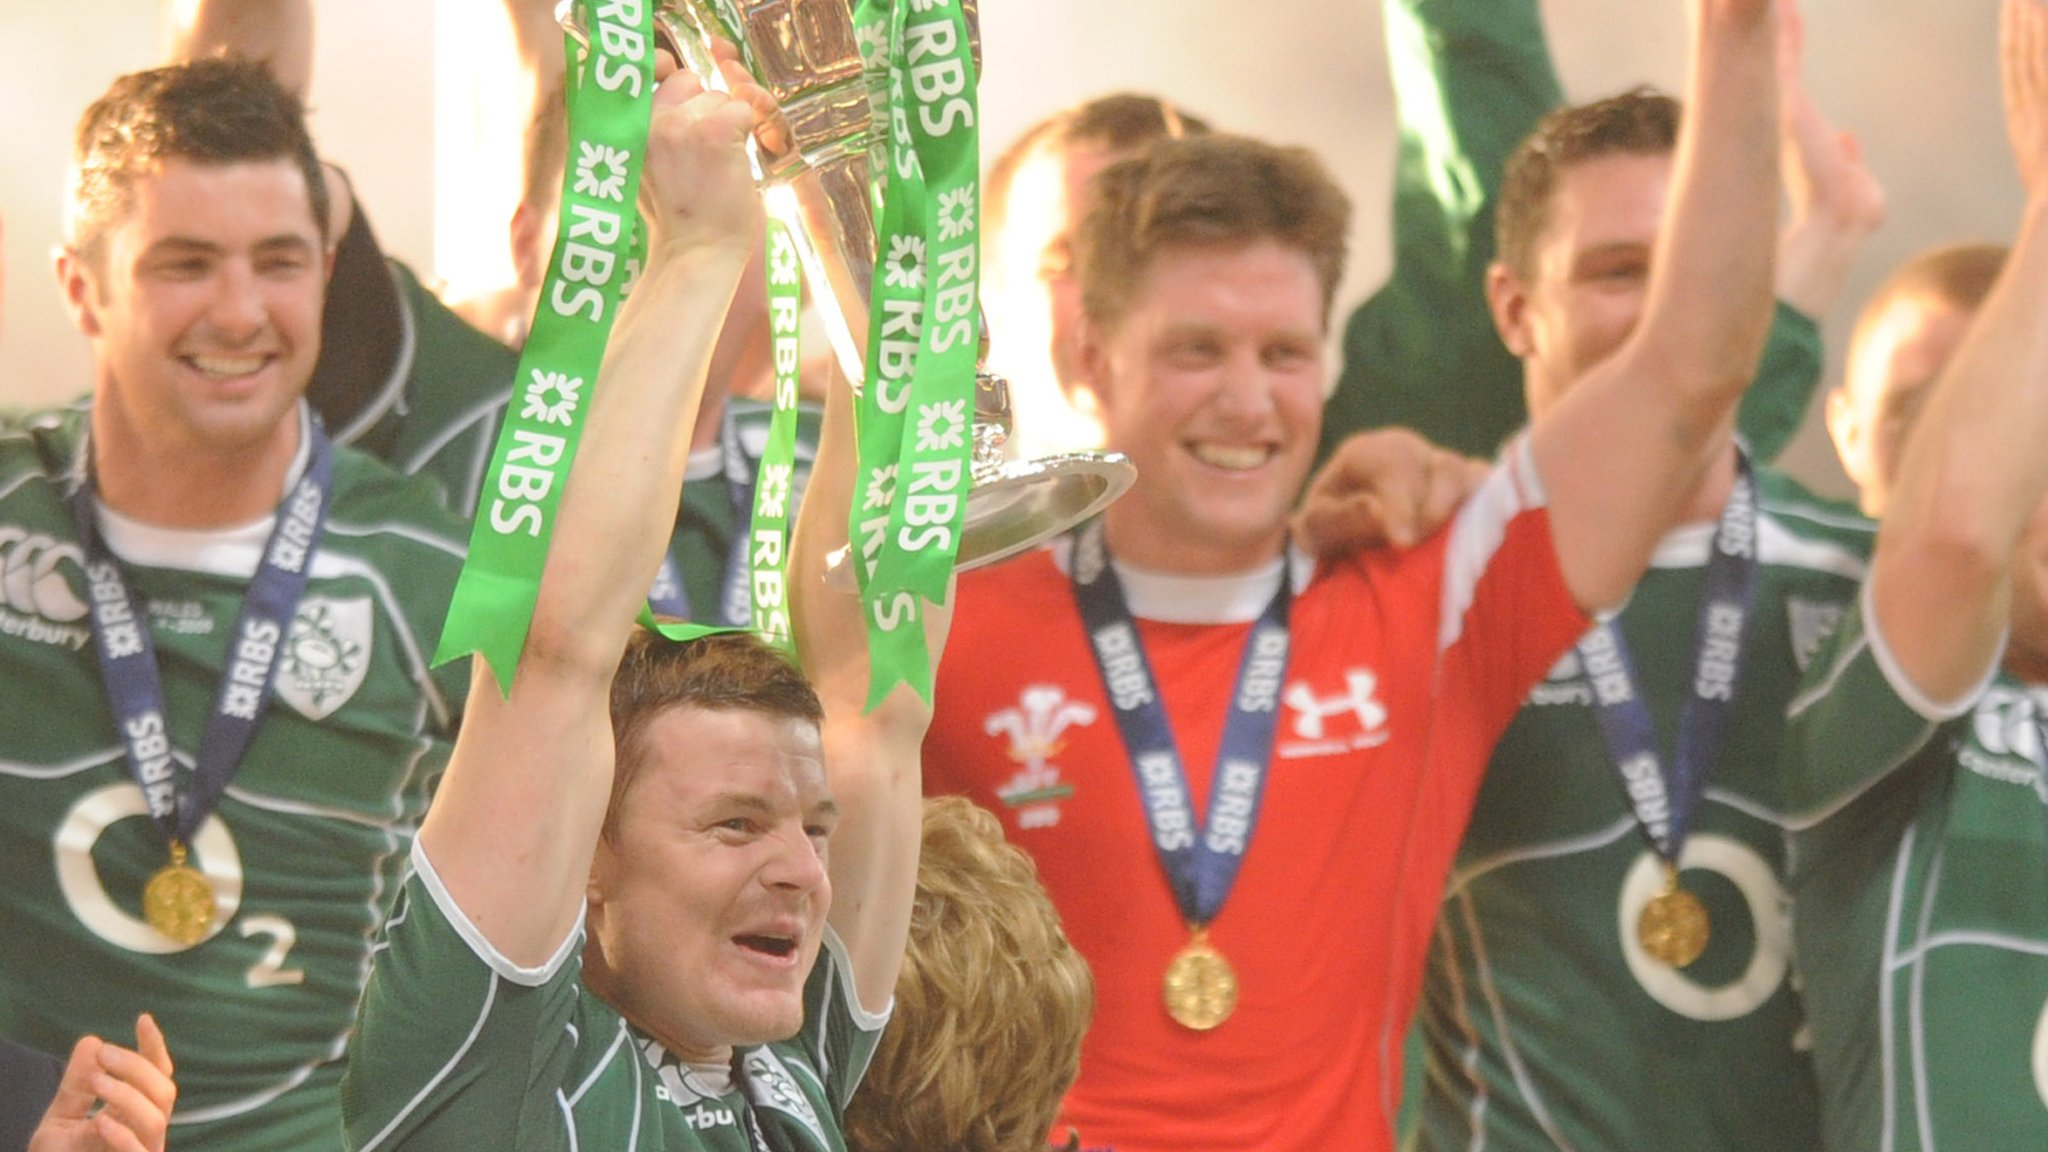 Truth or Not? Wales v Ireland, Six Nations 2019: Roles reversed from 2009 Grand Slam drama?